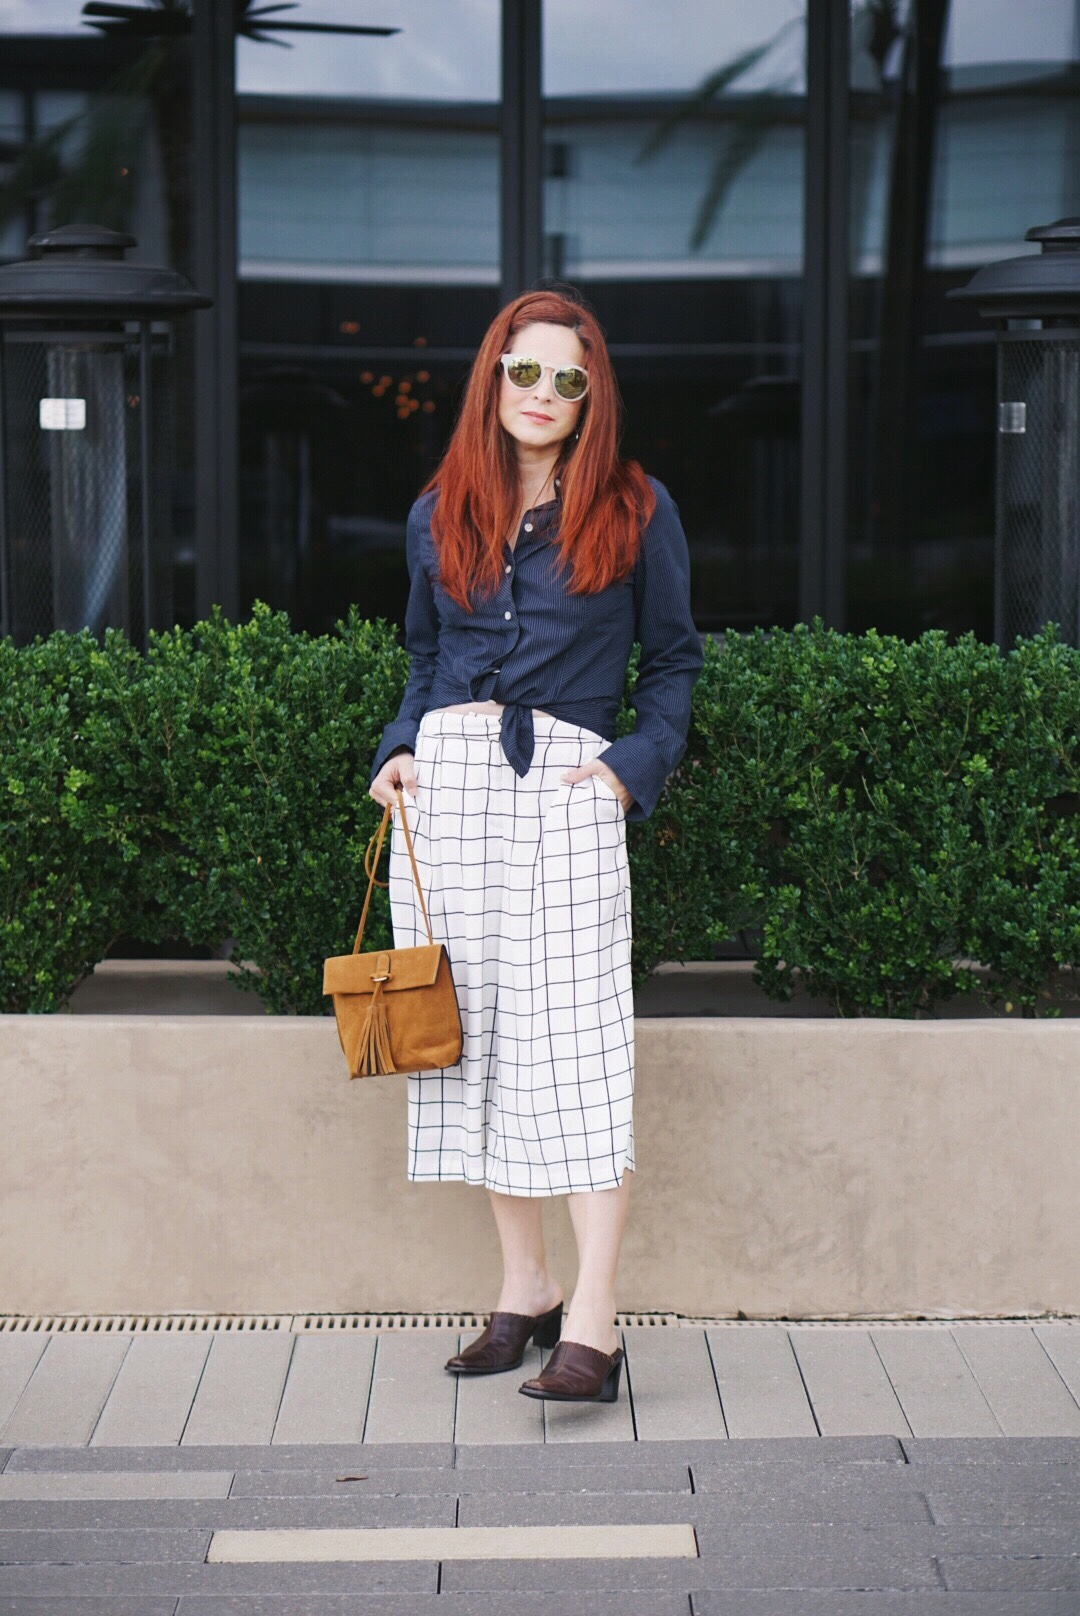 brown mules, fringe bag, suede crossbody, culottes, red hair inspiration, white round sunglasses, forever 21, old navy, striped navy shirt